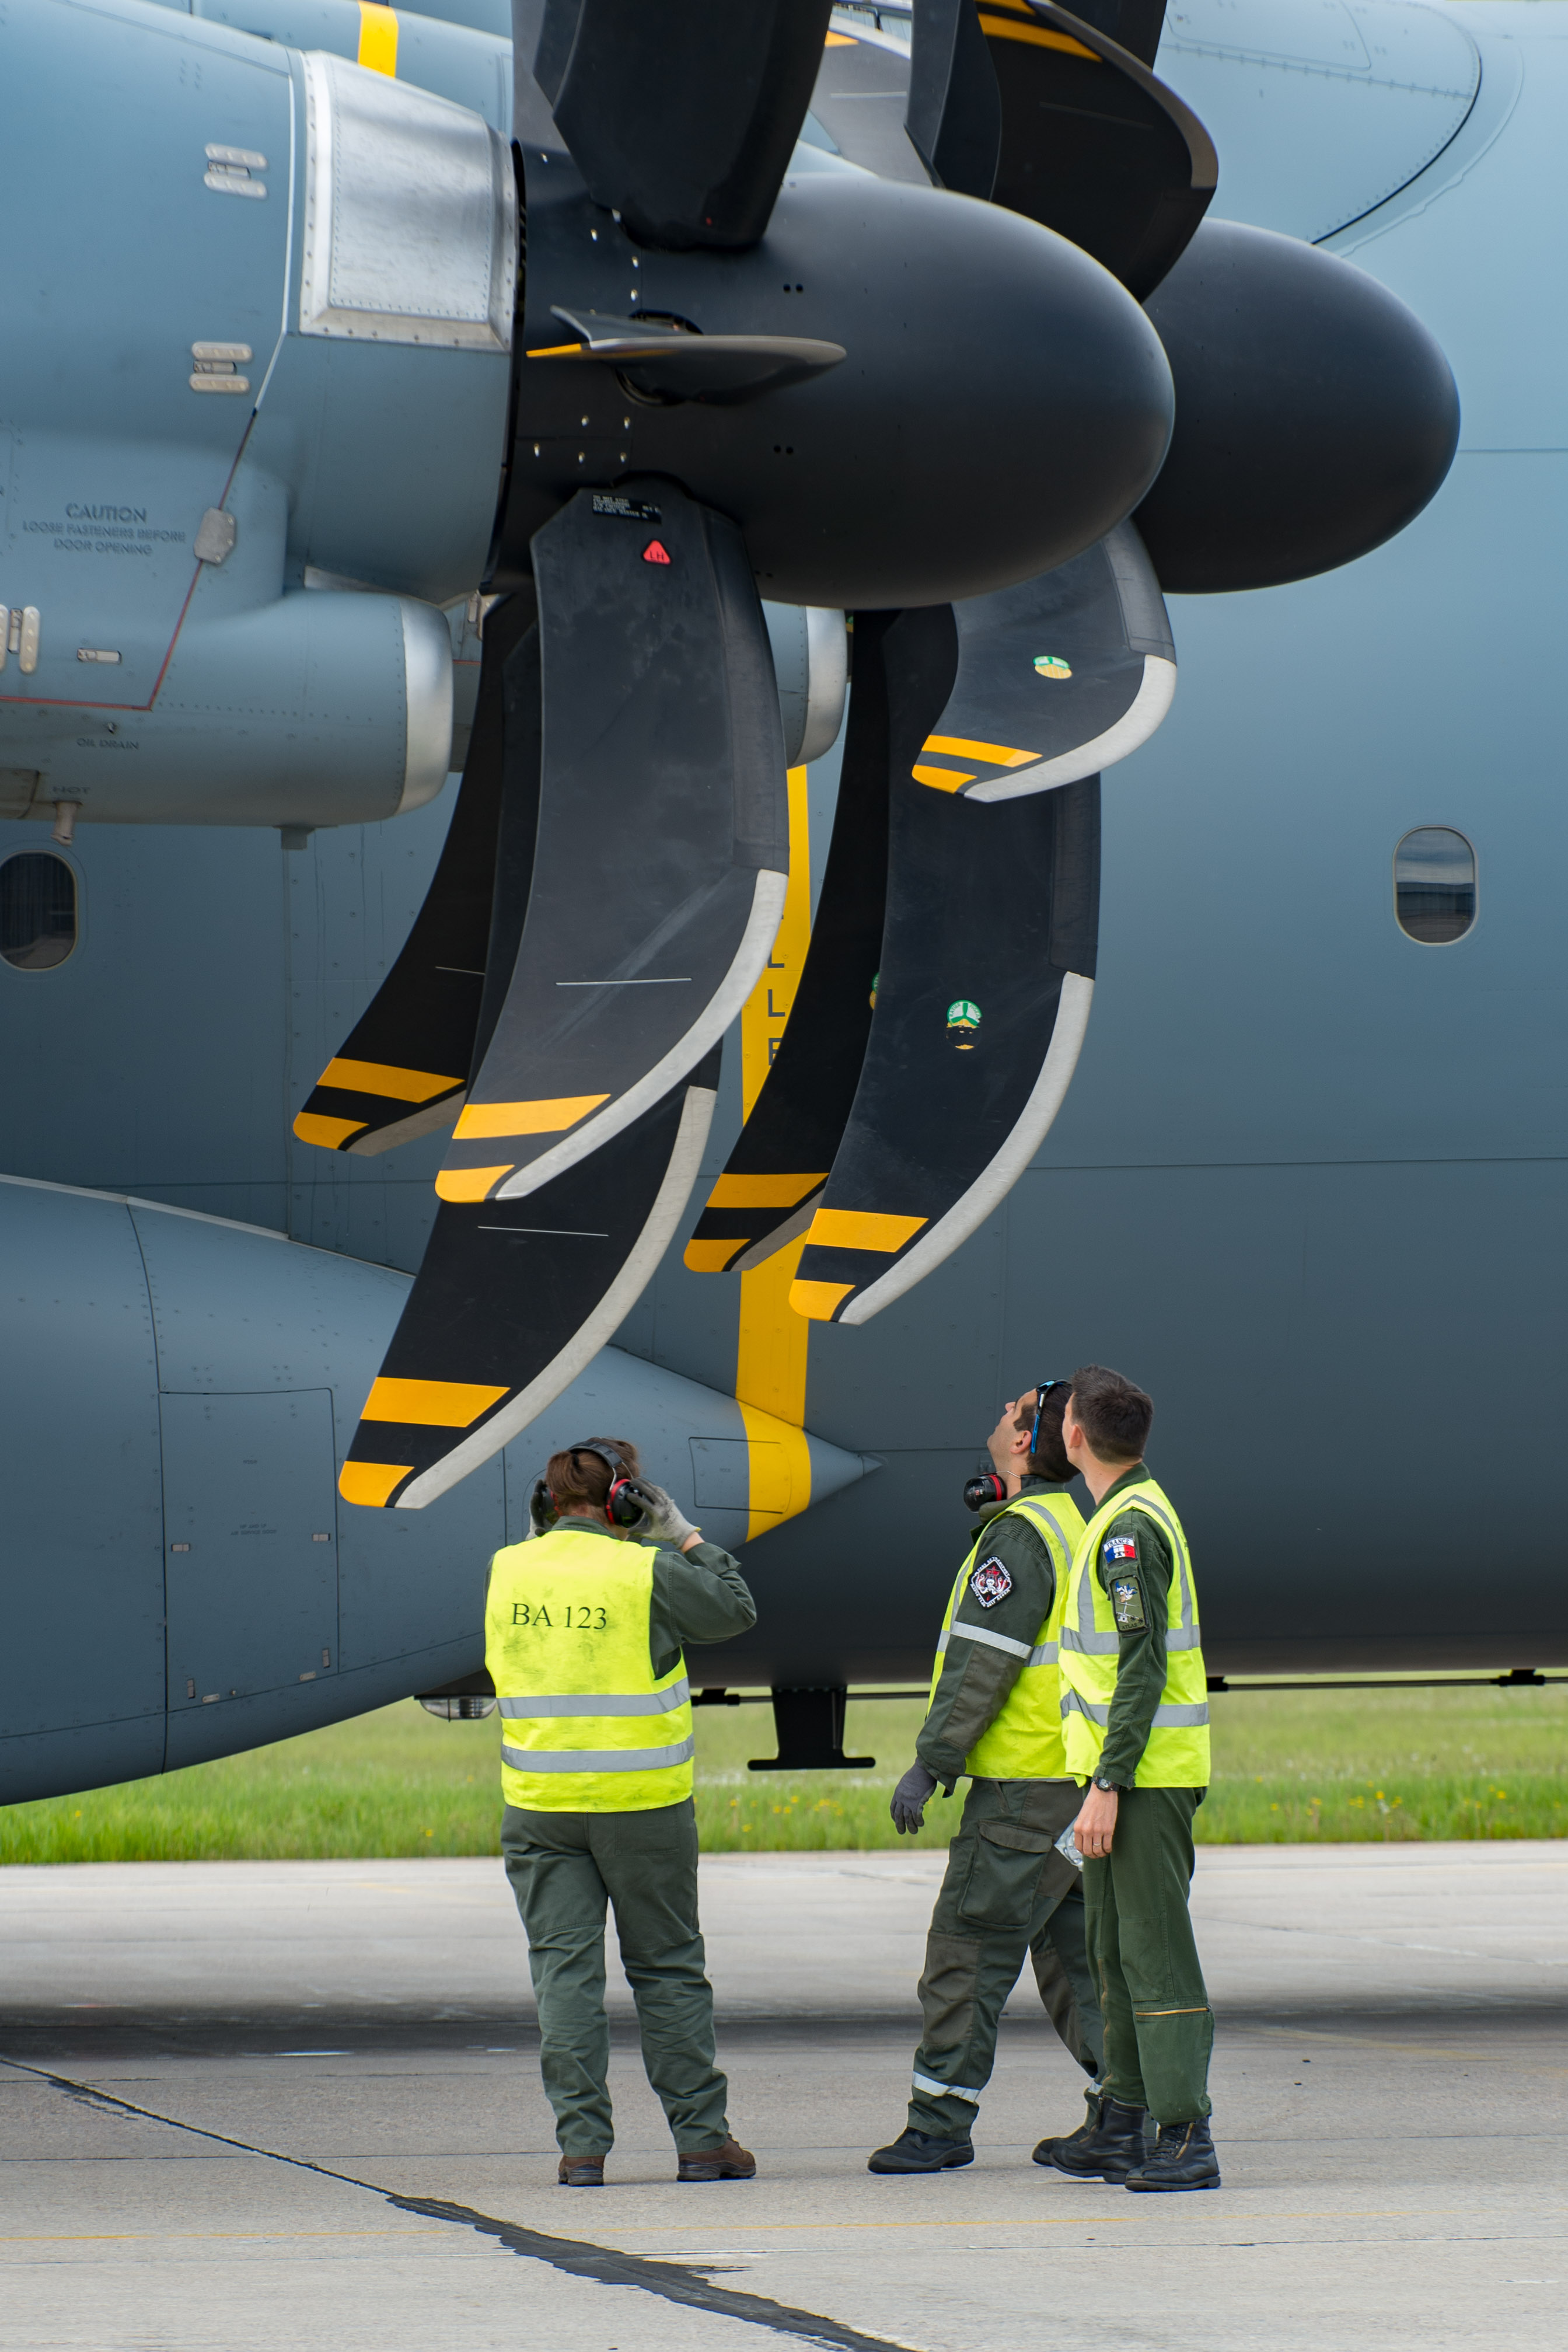 L'équipe au sol de l'Armée de l'Air française du A400M Atlas, effectuent des vérifications de maintenance après la vague du matin de l'Exercice Maple Flag 50, à la 4e Escadre de Cold Lake, le 15 juin 2017. PHOTO : Caporal-chef Heather MacRae, CK05-2017-0460-034